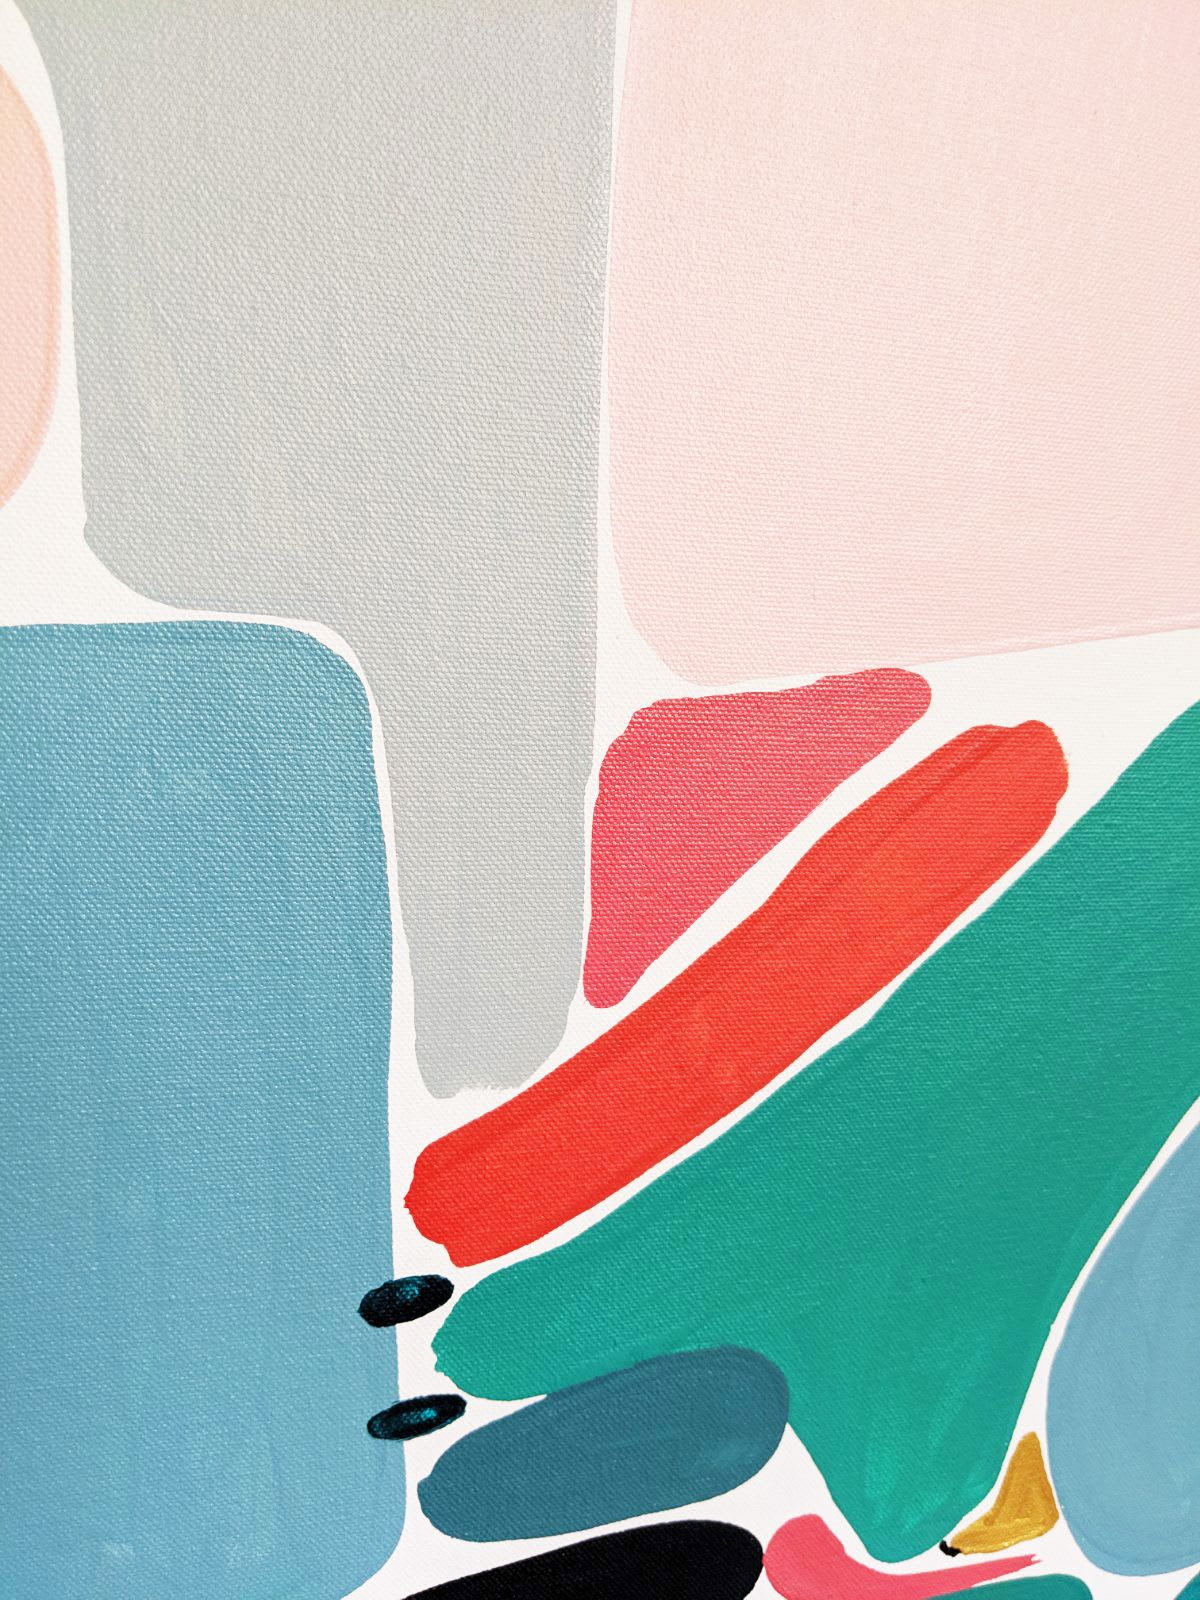 Paintings by Ellen McKenna seen at Town Hall Gallery, Hawthorn - 'Looking at it from Here'